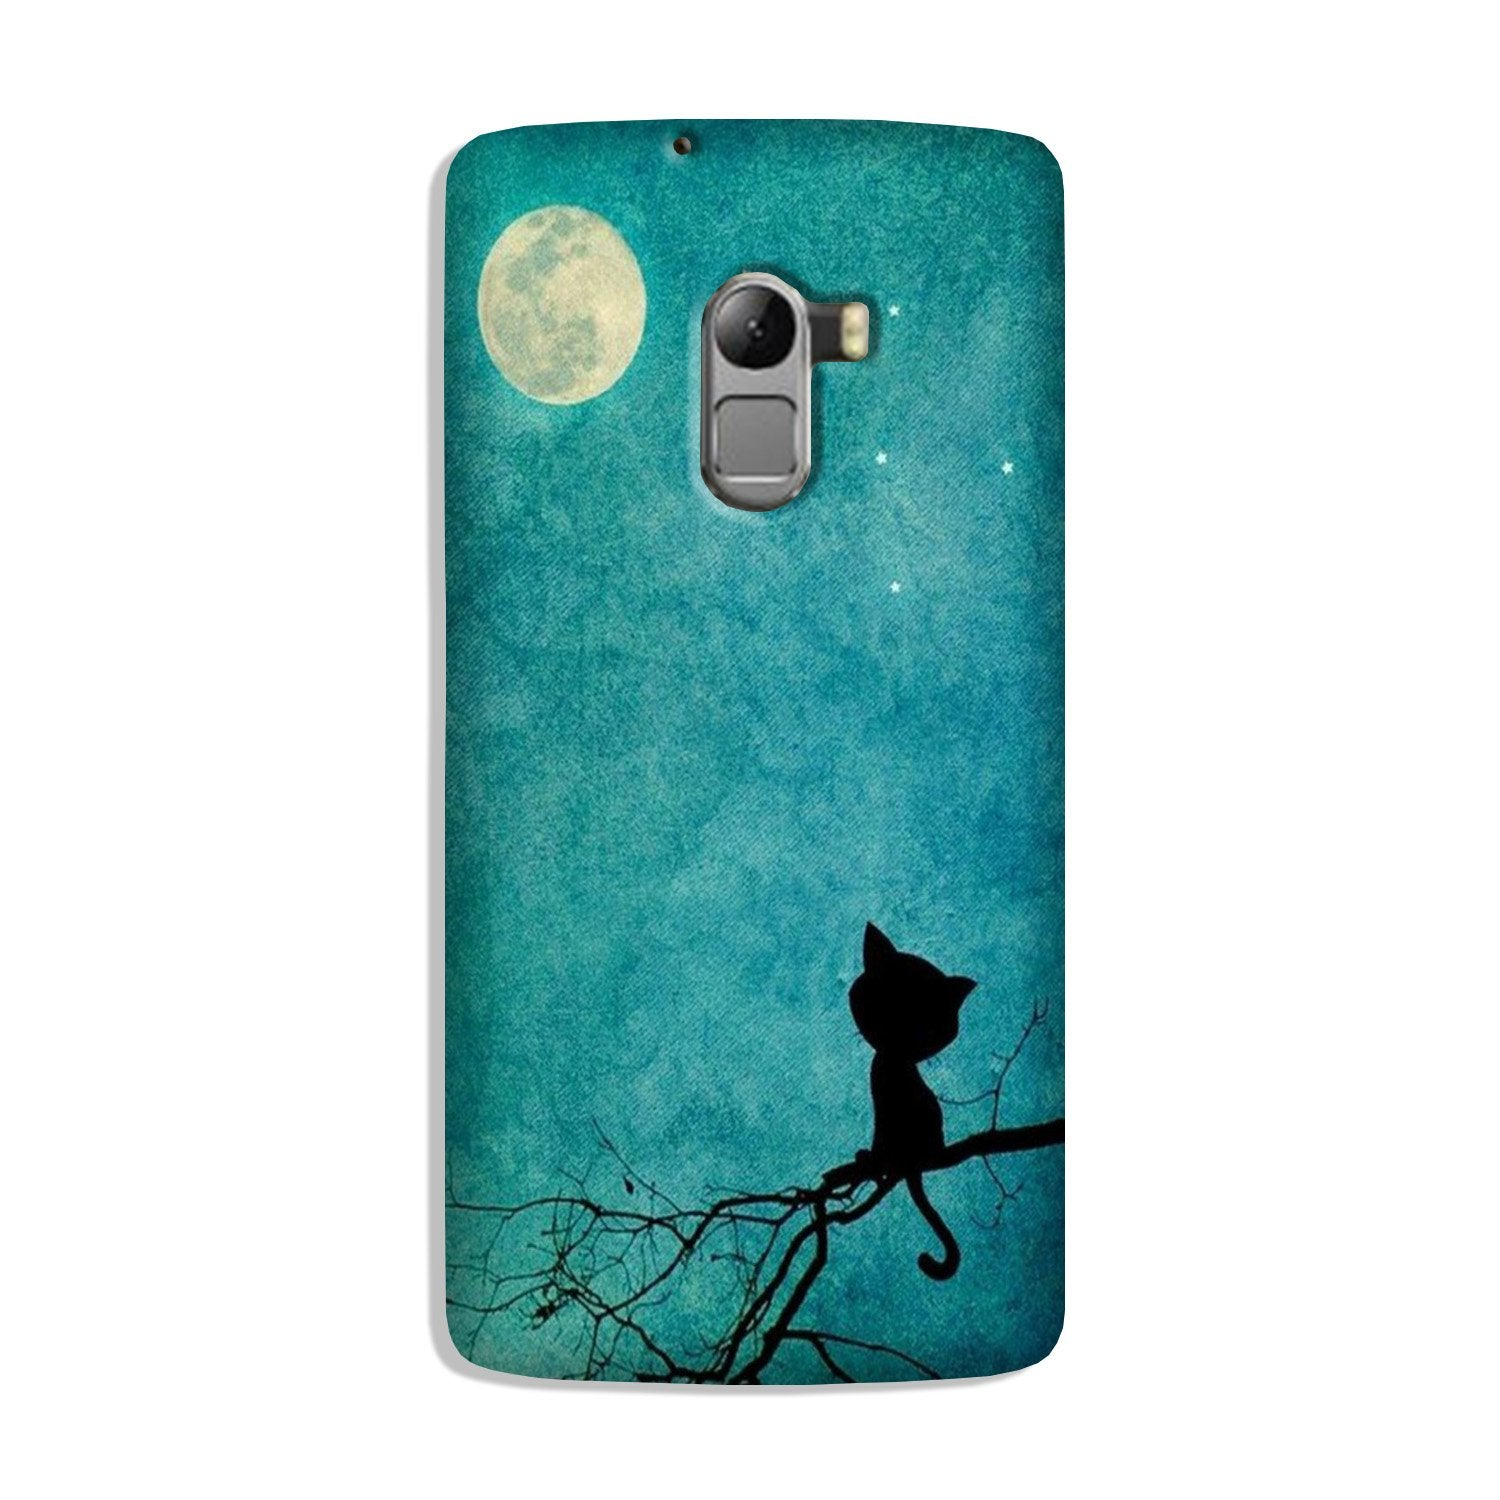 Moon cat Case for Lenovo K4 Note